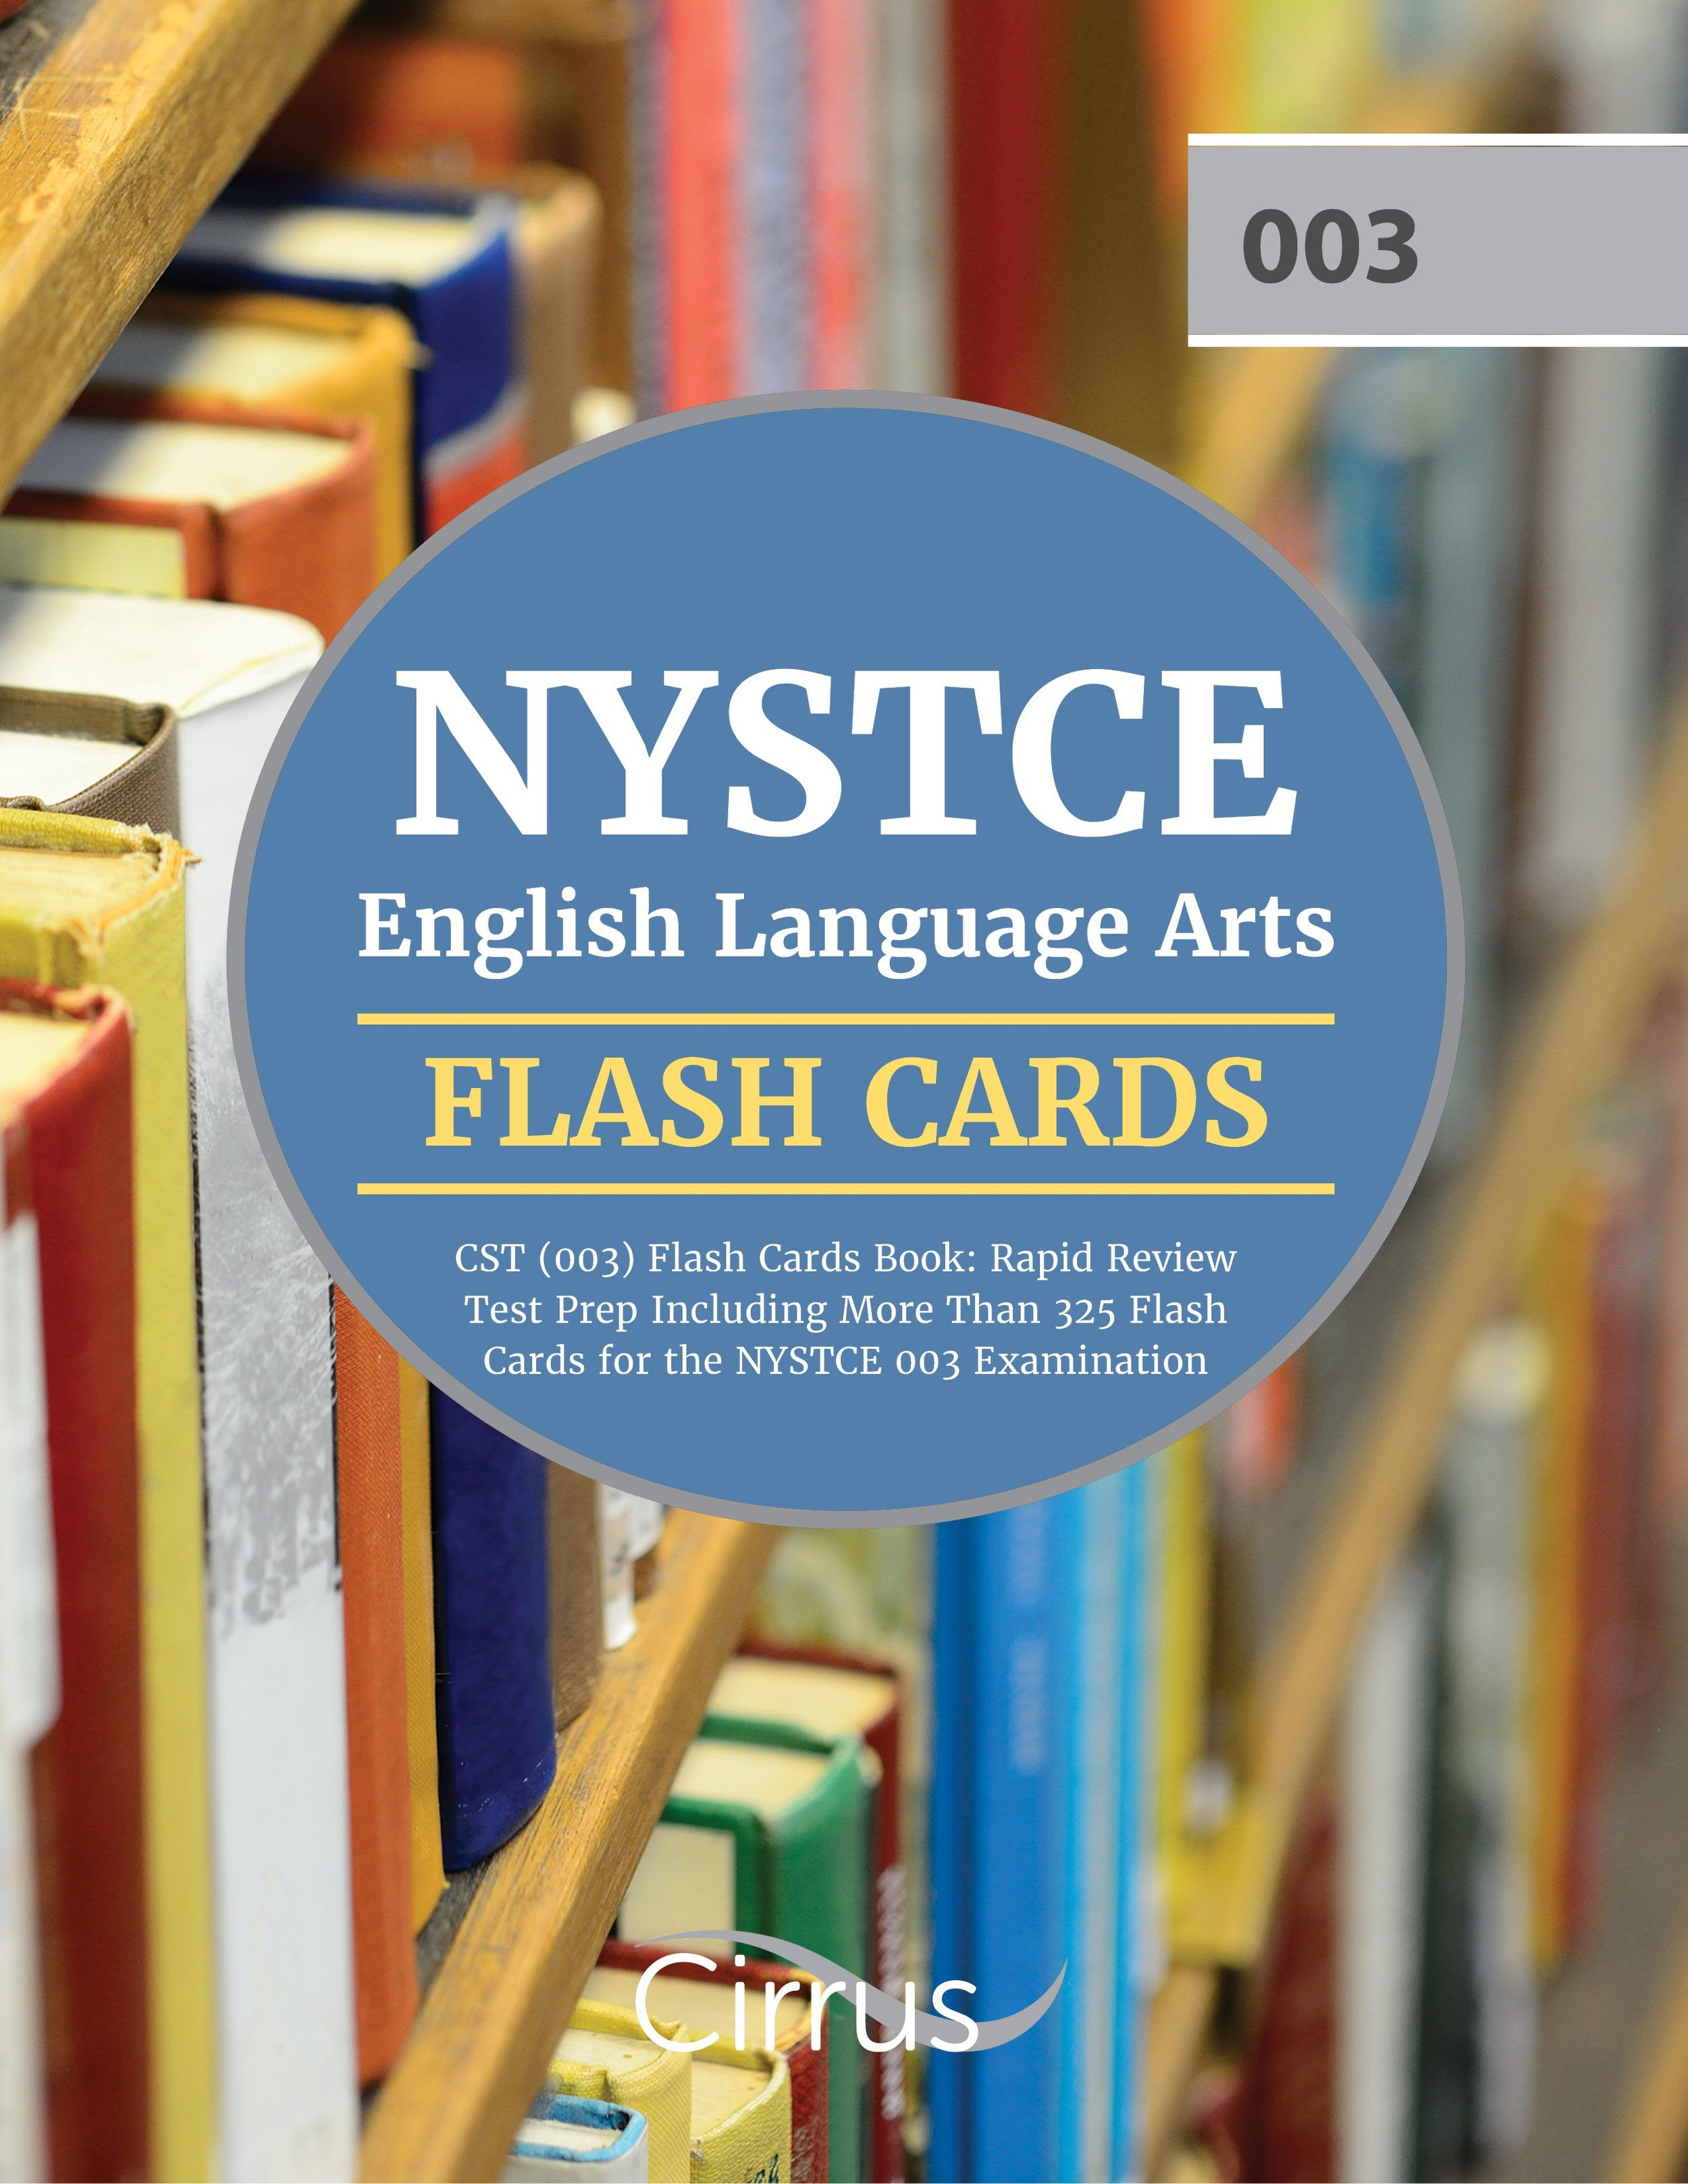 NYSTCE English Language Arts (003) Flash Cards Book